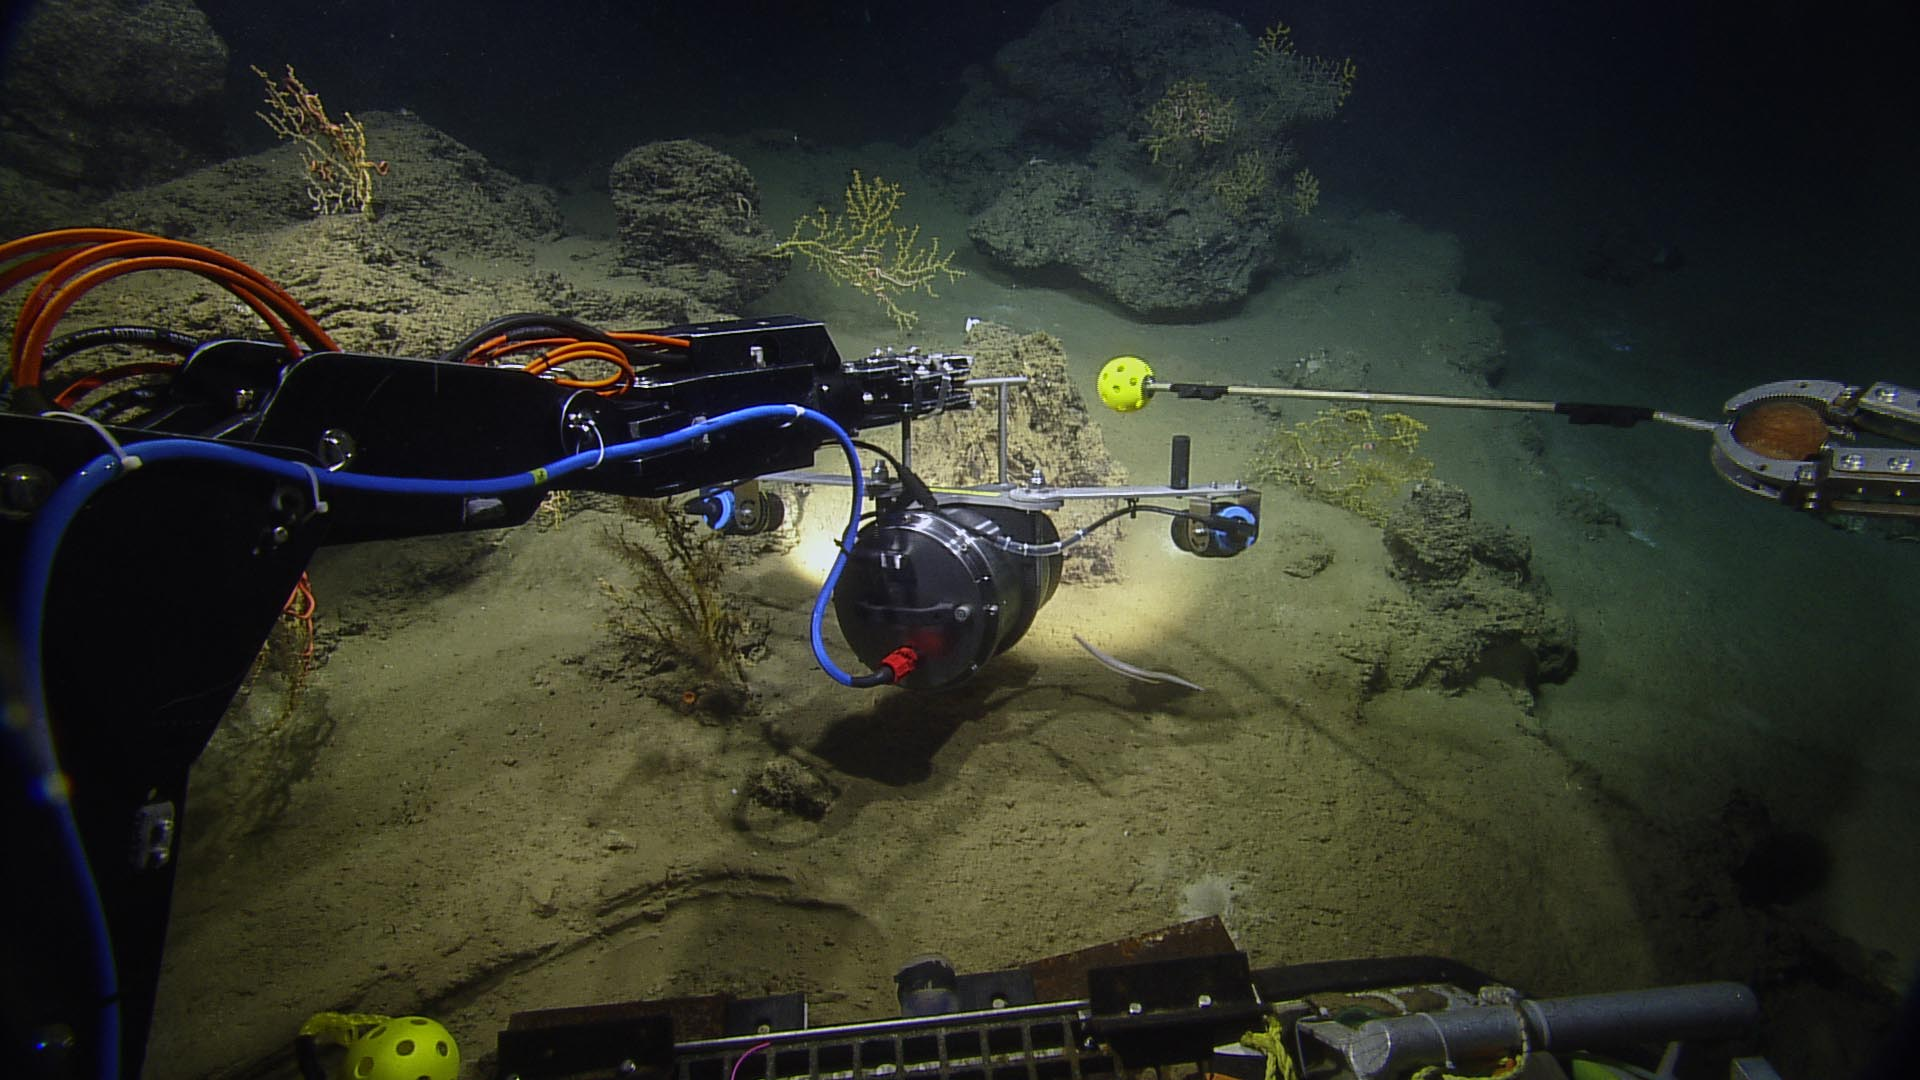 <div style='color:#000000;'><br /><br /><h2>ROV Hercules imaging some deep sea corals.</h2>Photo courtesy of Ocean Exploration Trust and ECOGIG</div>